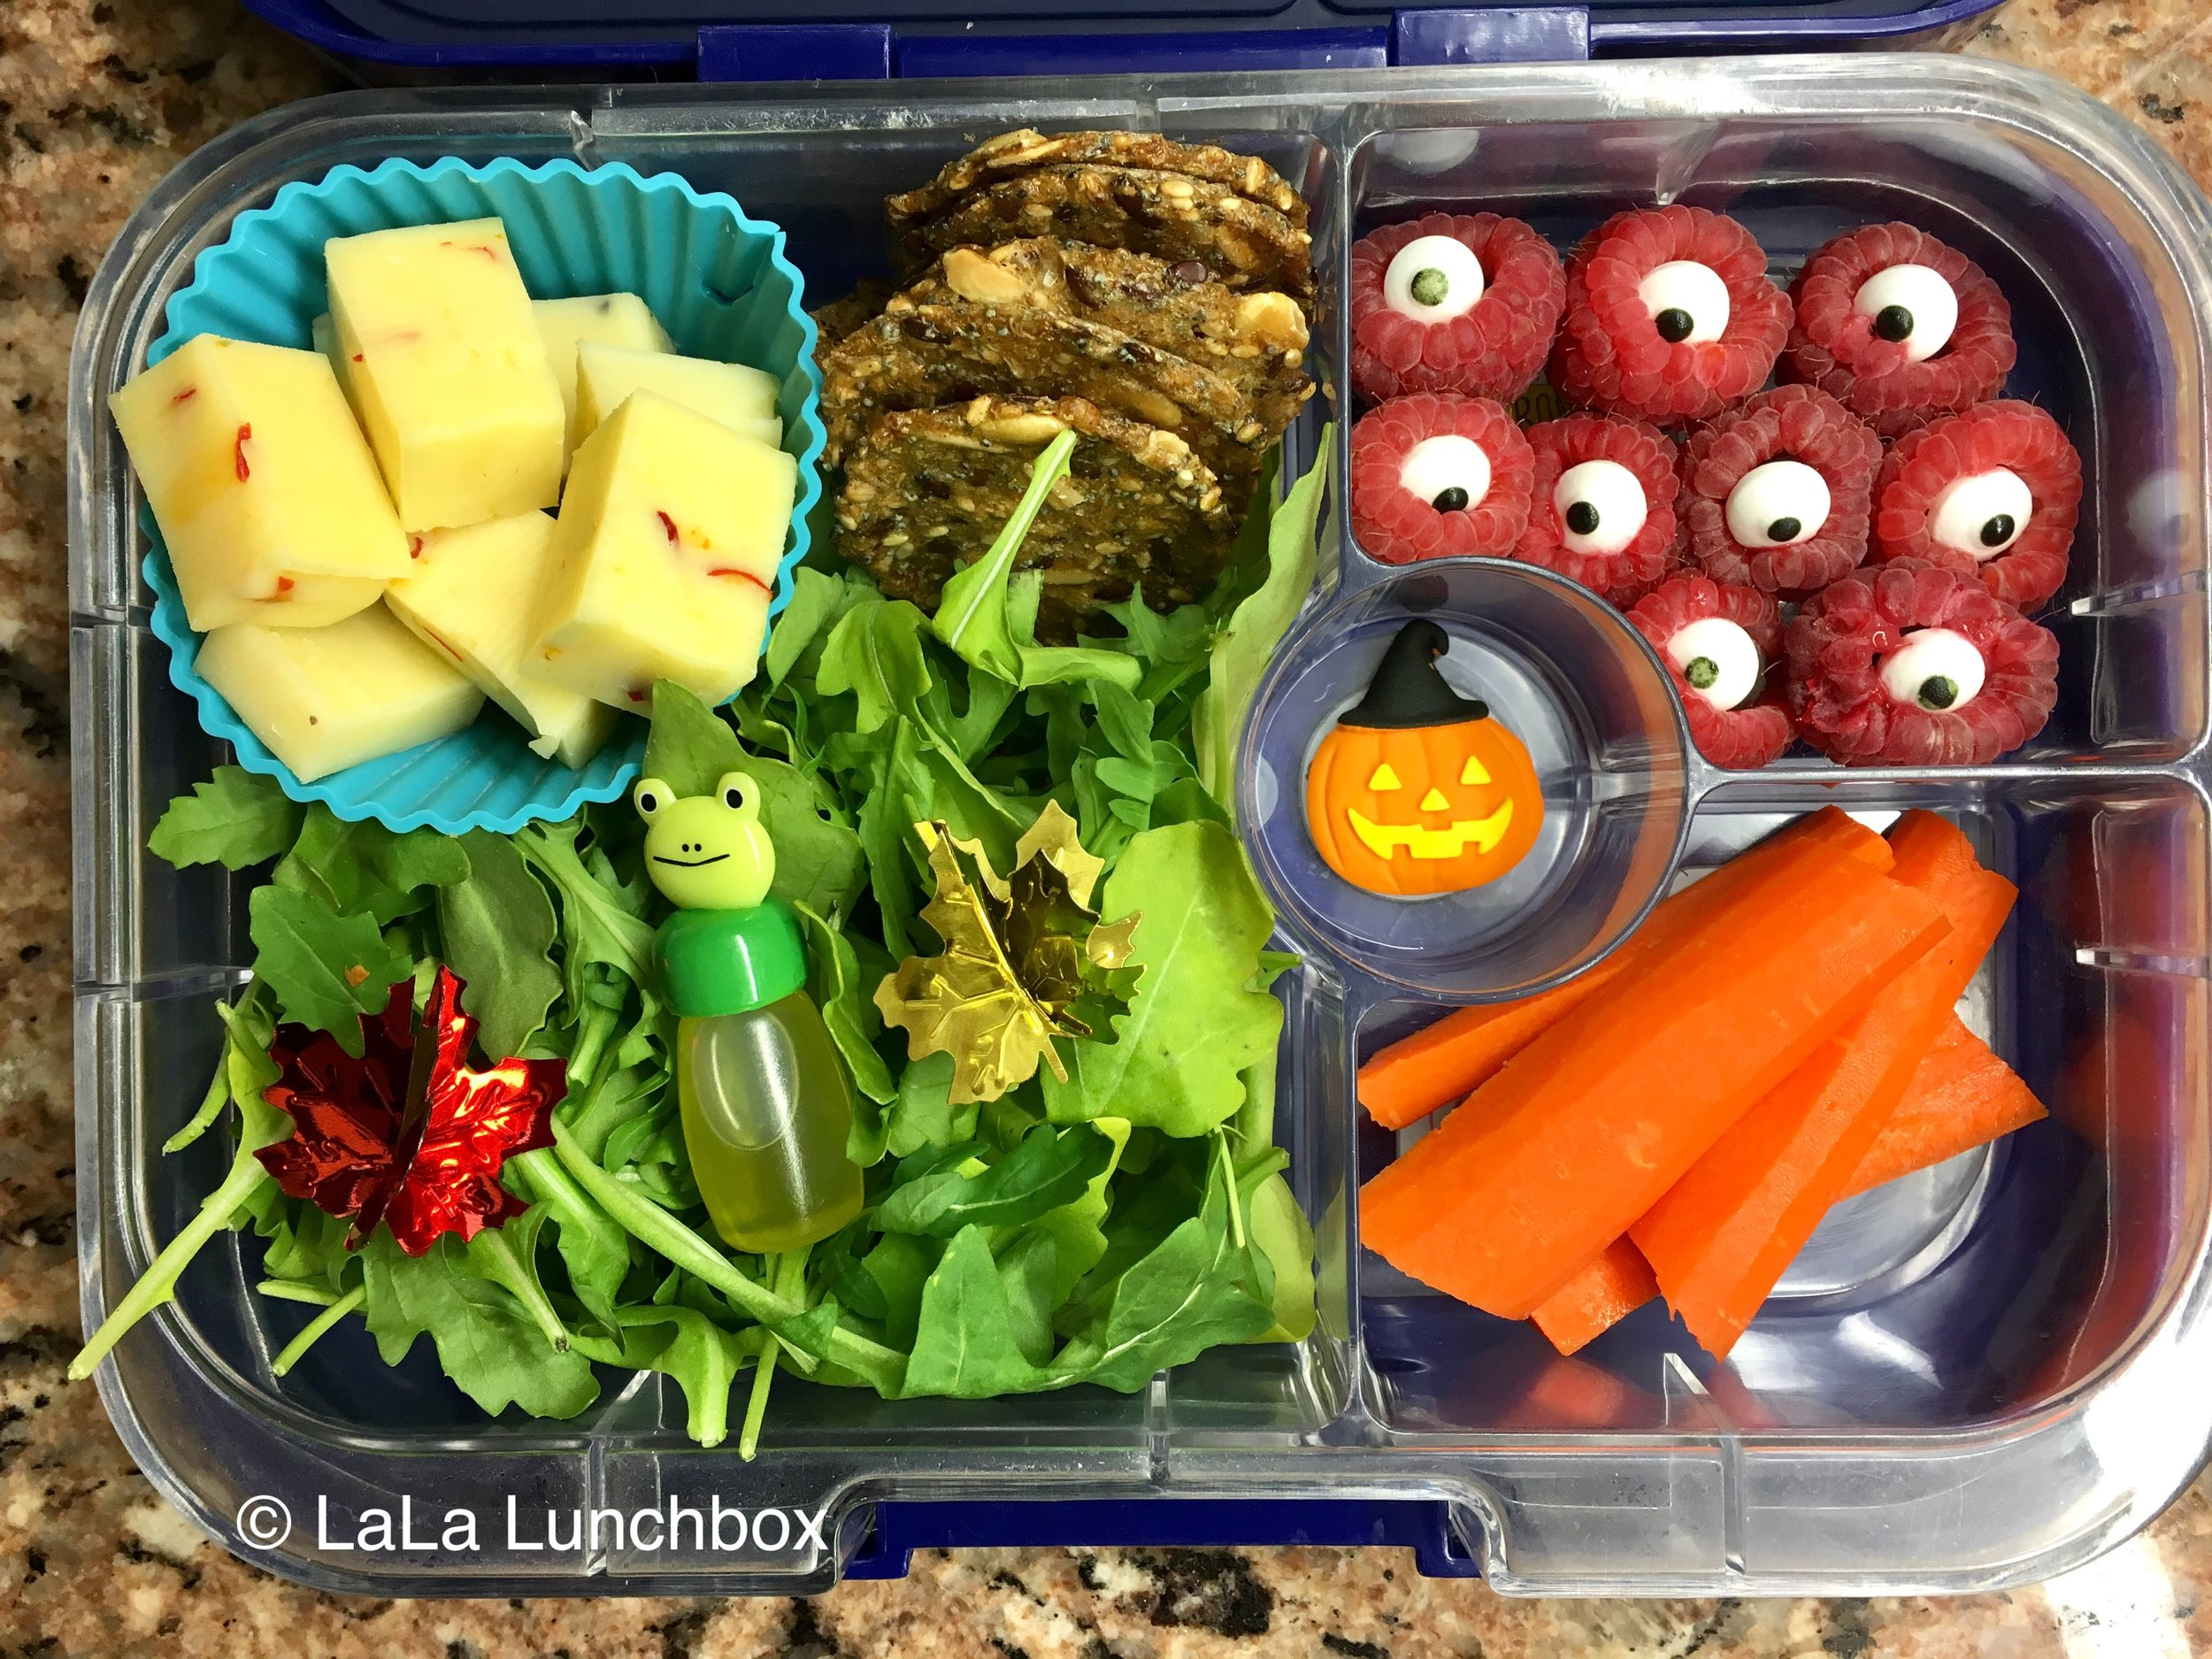 Raspberry eyeballs! Plus salad, cheese and crackers and carrots.